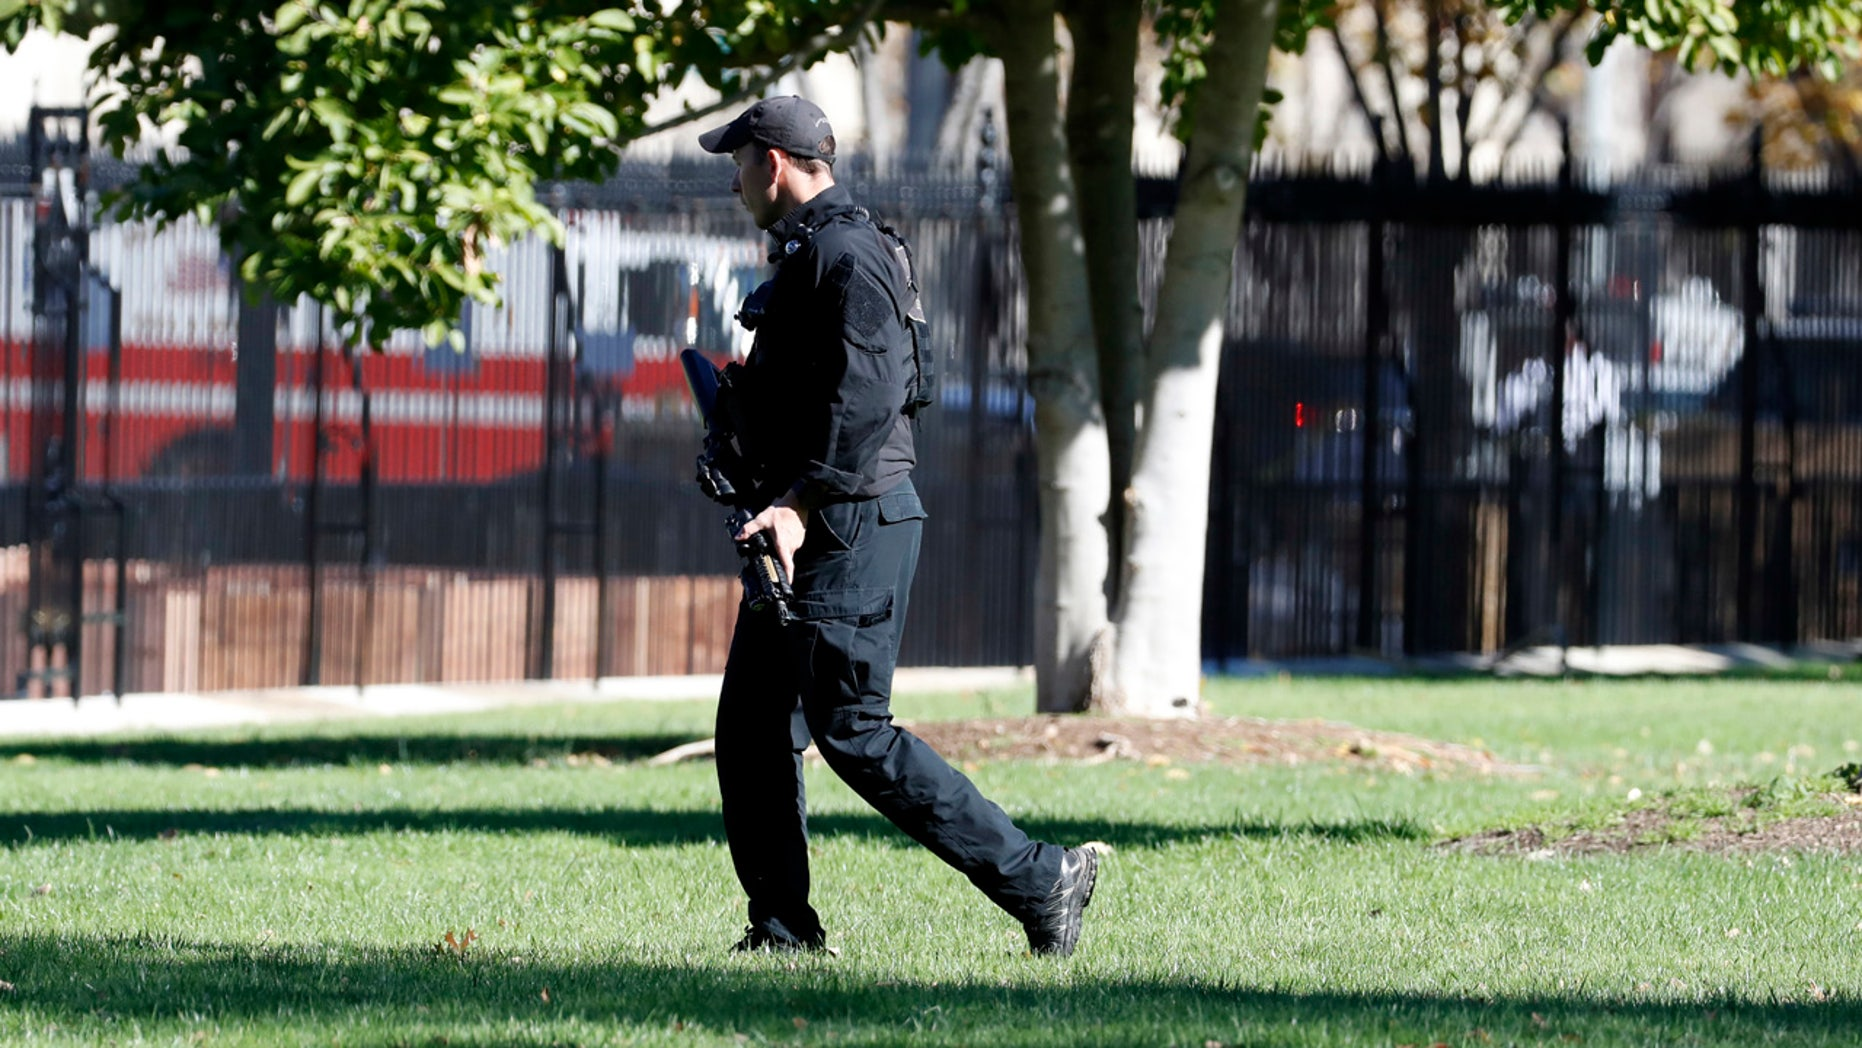 Nov. 5, 2016: A U.S. Secret Service officer walks the grounds near the North Portico during a lock-down at the White House.